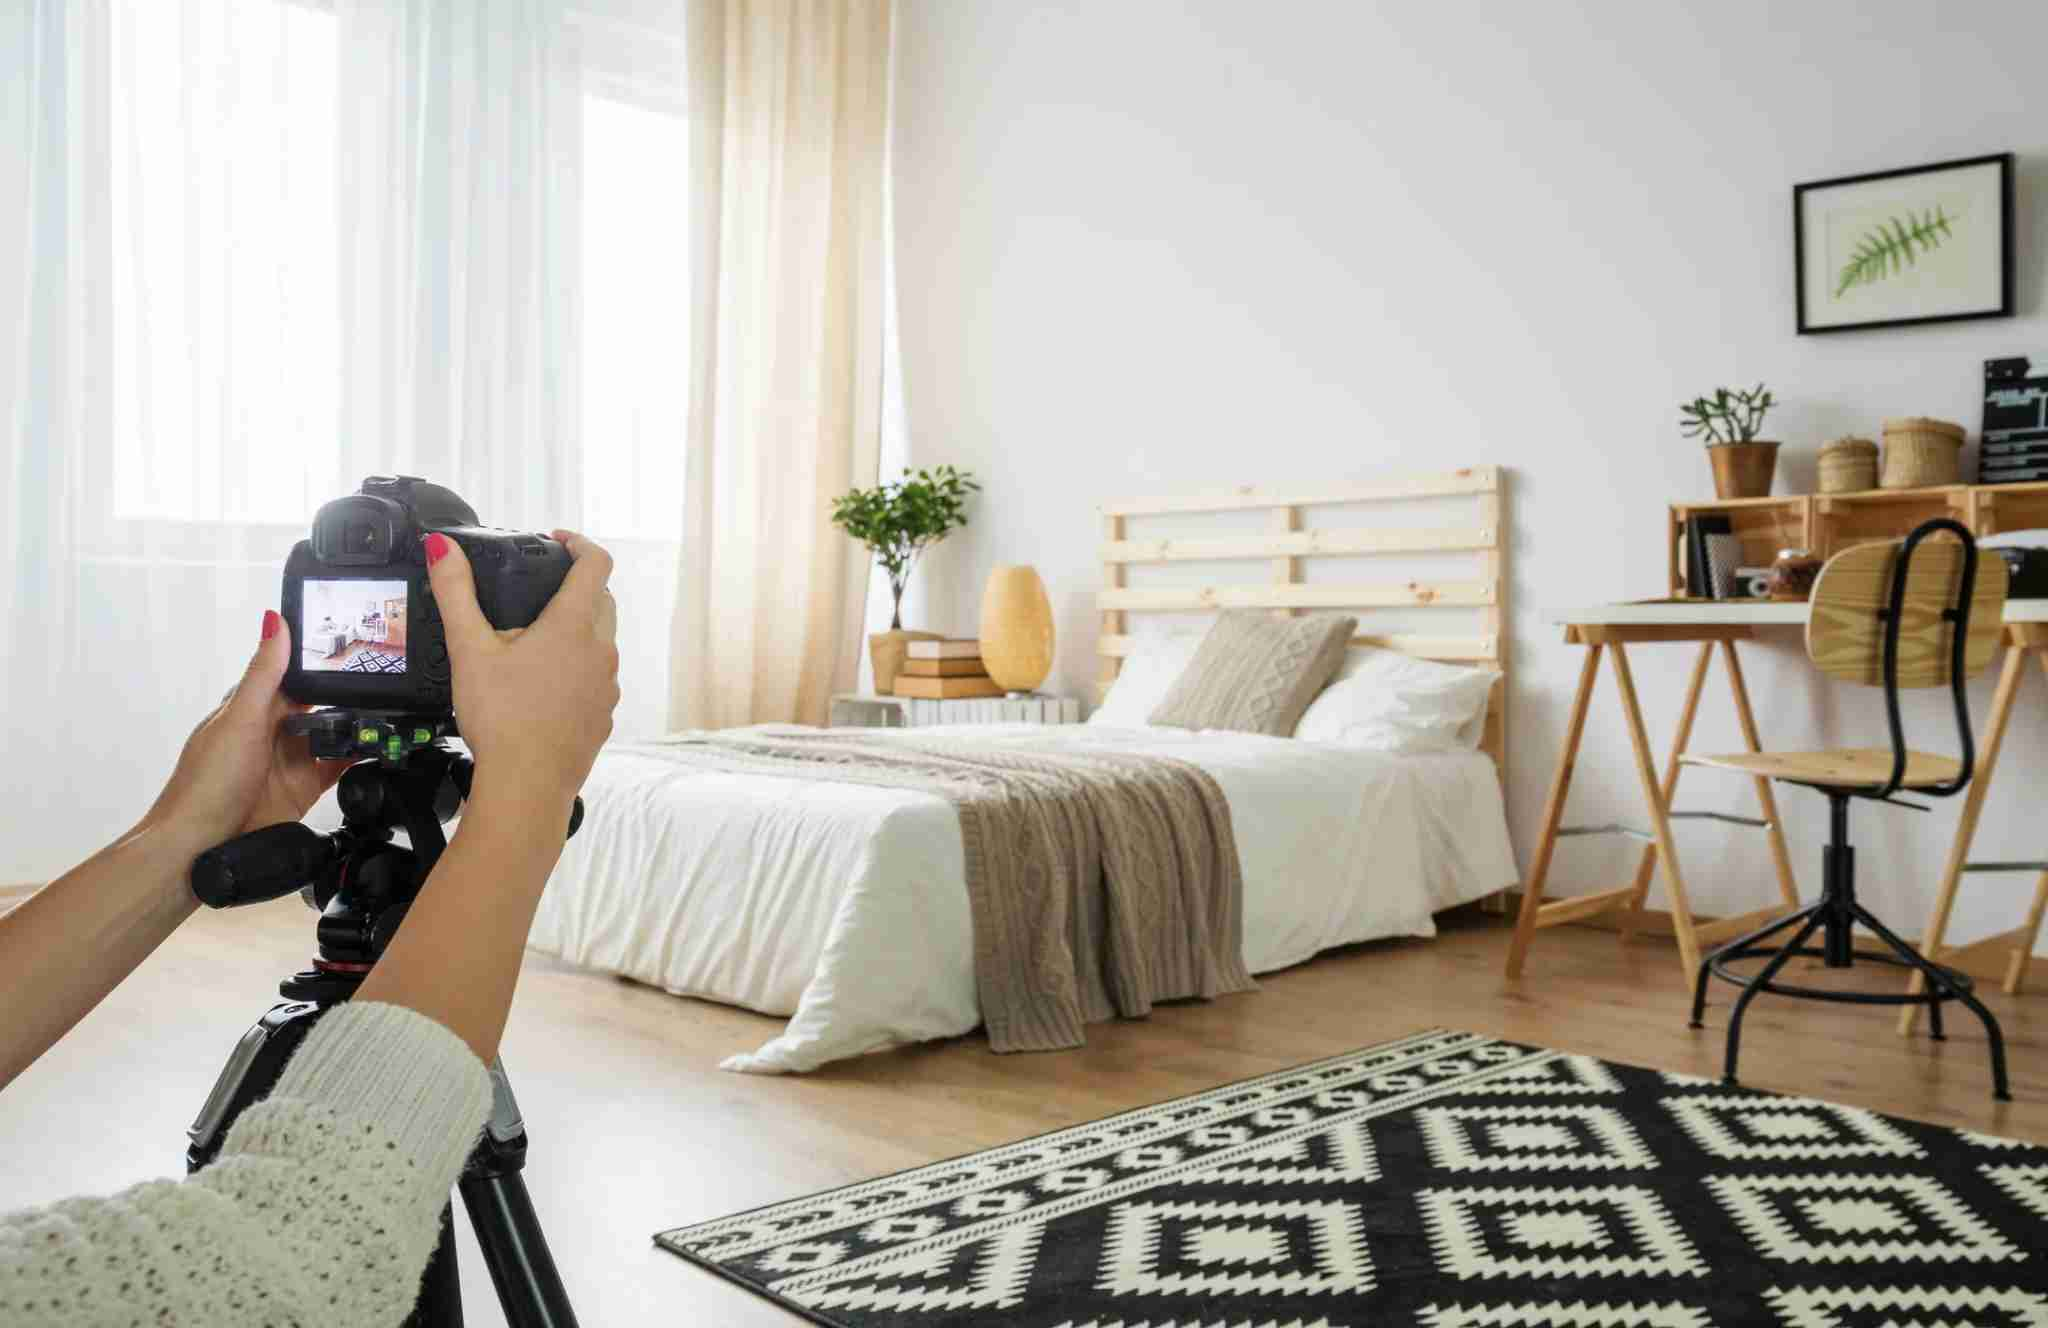 Professional images help Airbnb hosts list at higher rates. (Photo by Katarzyna Bialasiewicz/GettyImages)